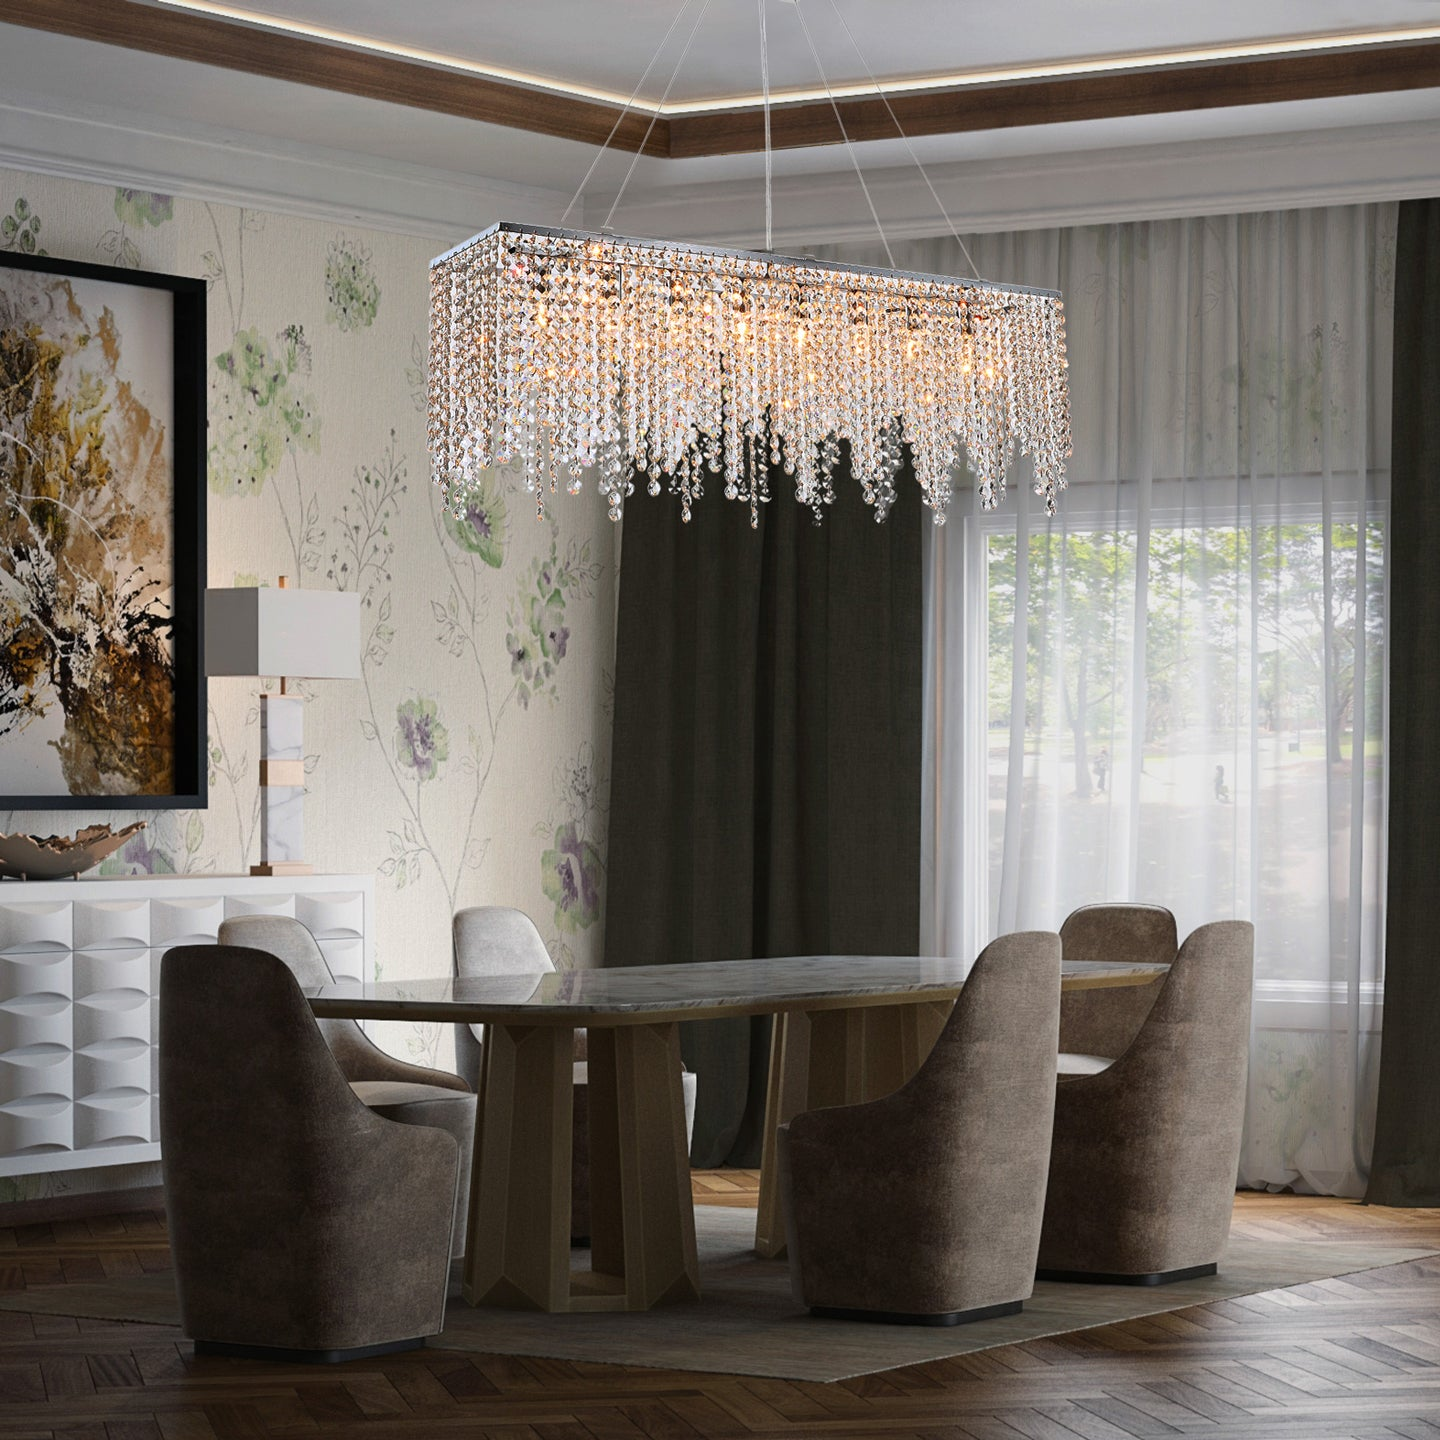 Raindrop Island Crystal Chandelier - Pendant Light - Dining room